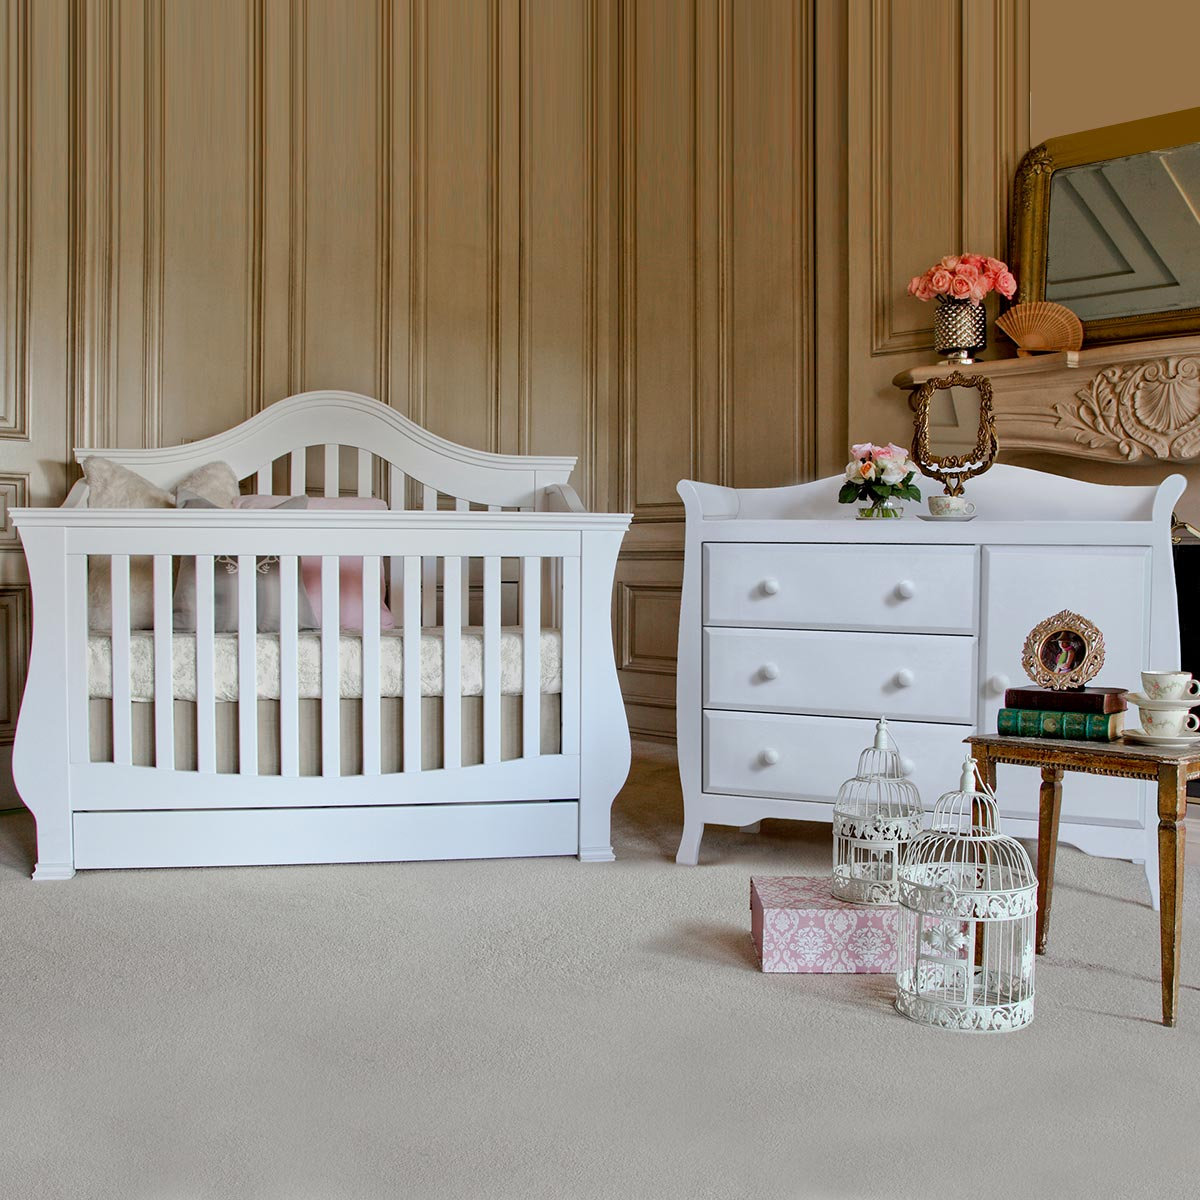 target nursery spiral natart white piece with cabinets dresser throughout collection chic staircase for bedroom resistant big crib on set moderno dressers landscape amusing walmart attractive baby home rustico slide sale lots kitchen furniture drought and designer